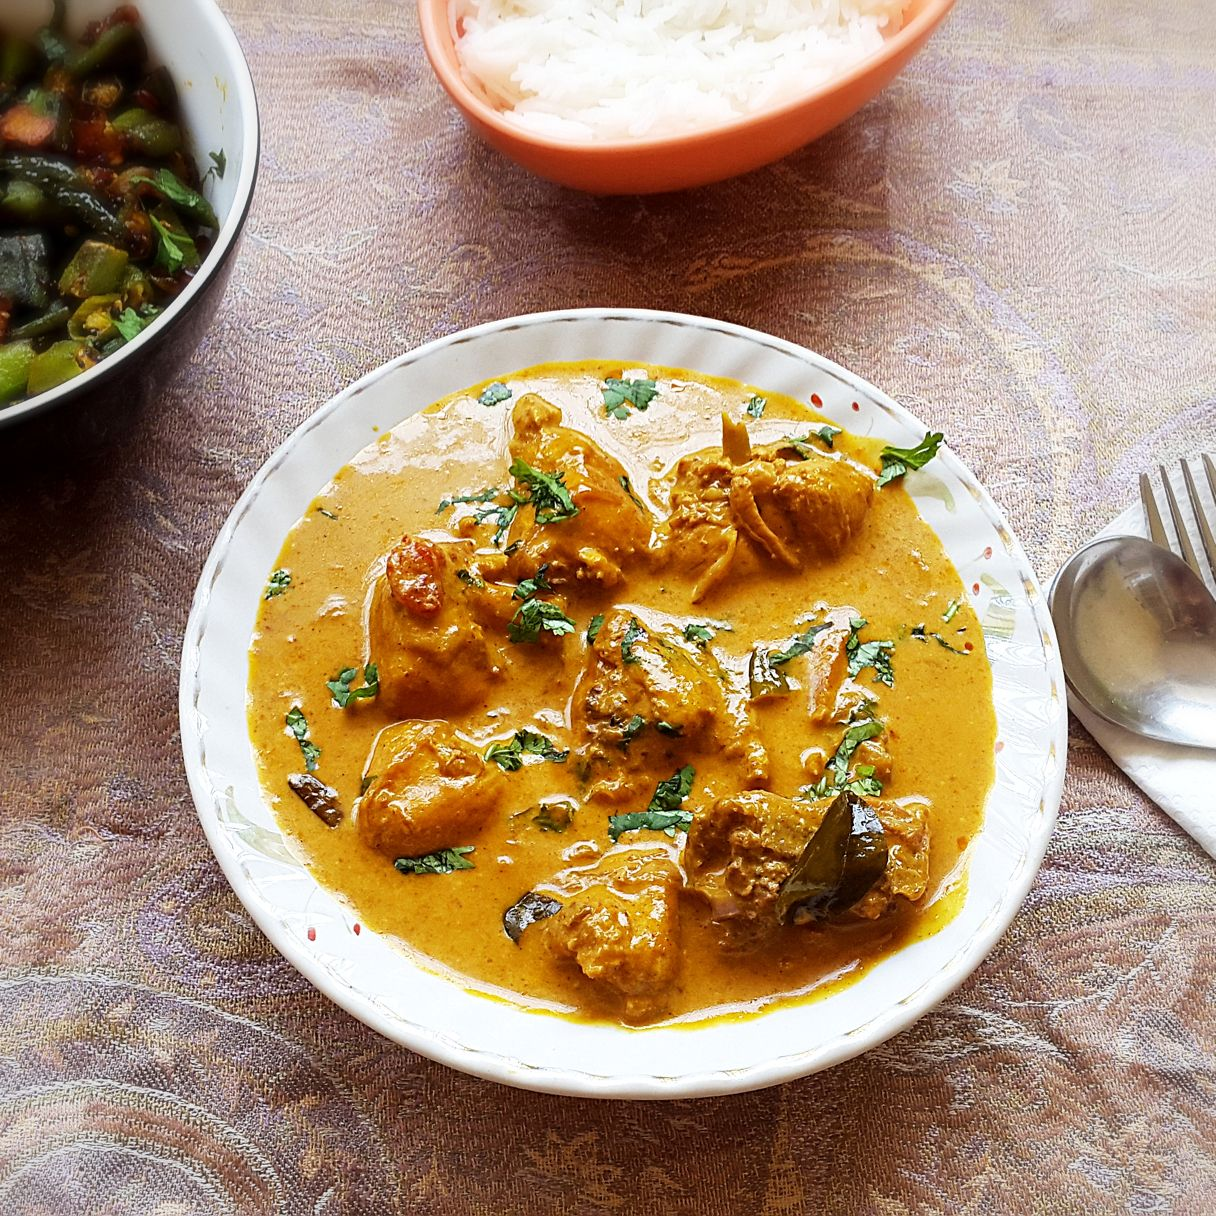 Chicken Coconut Curry Recipe Chicken With Coconut Milk And Spices My Indian Taste Coconut Curry Recipes Curry Recipes Curry Chicken Recipes